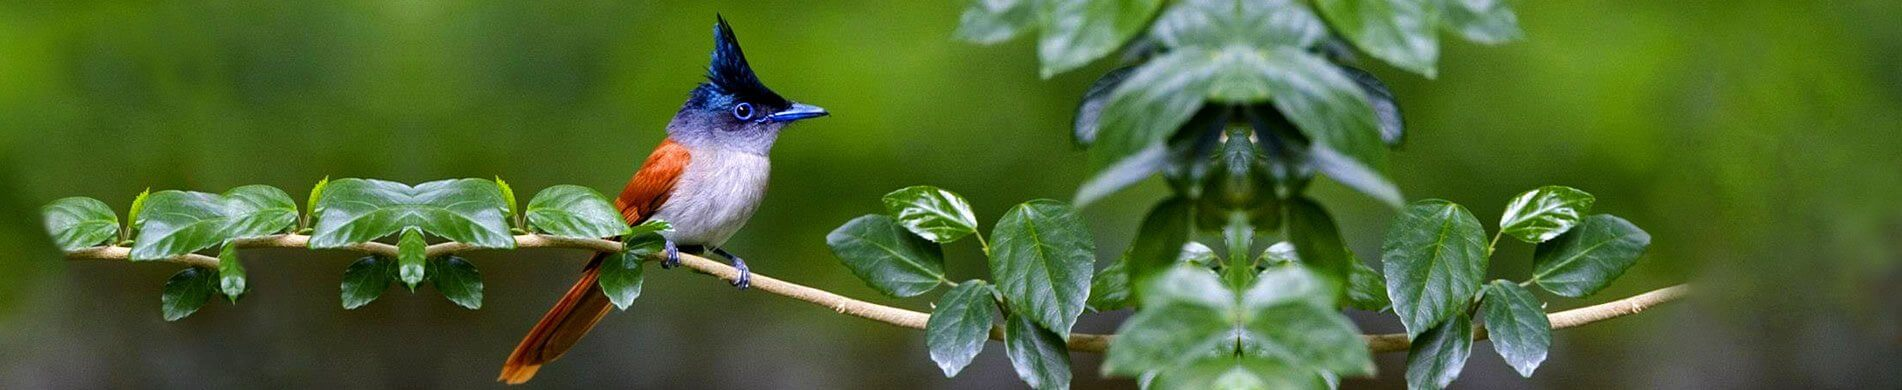 Check birds in Sri Lanka with Birdwatching package from the finest Travel Agents in Sri Lanka